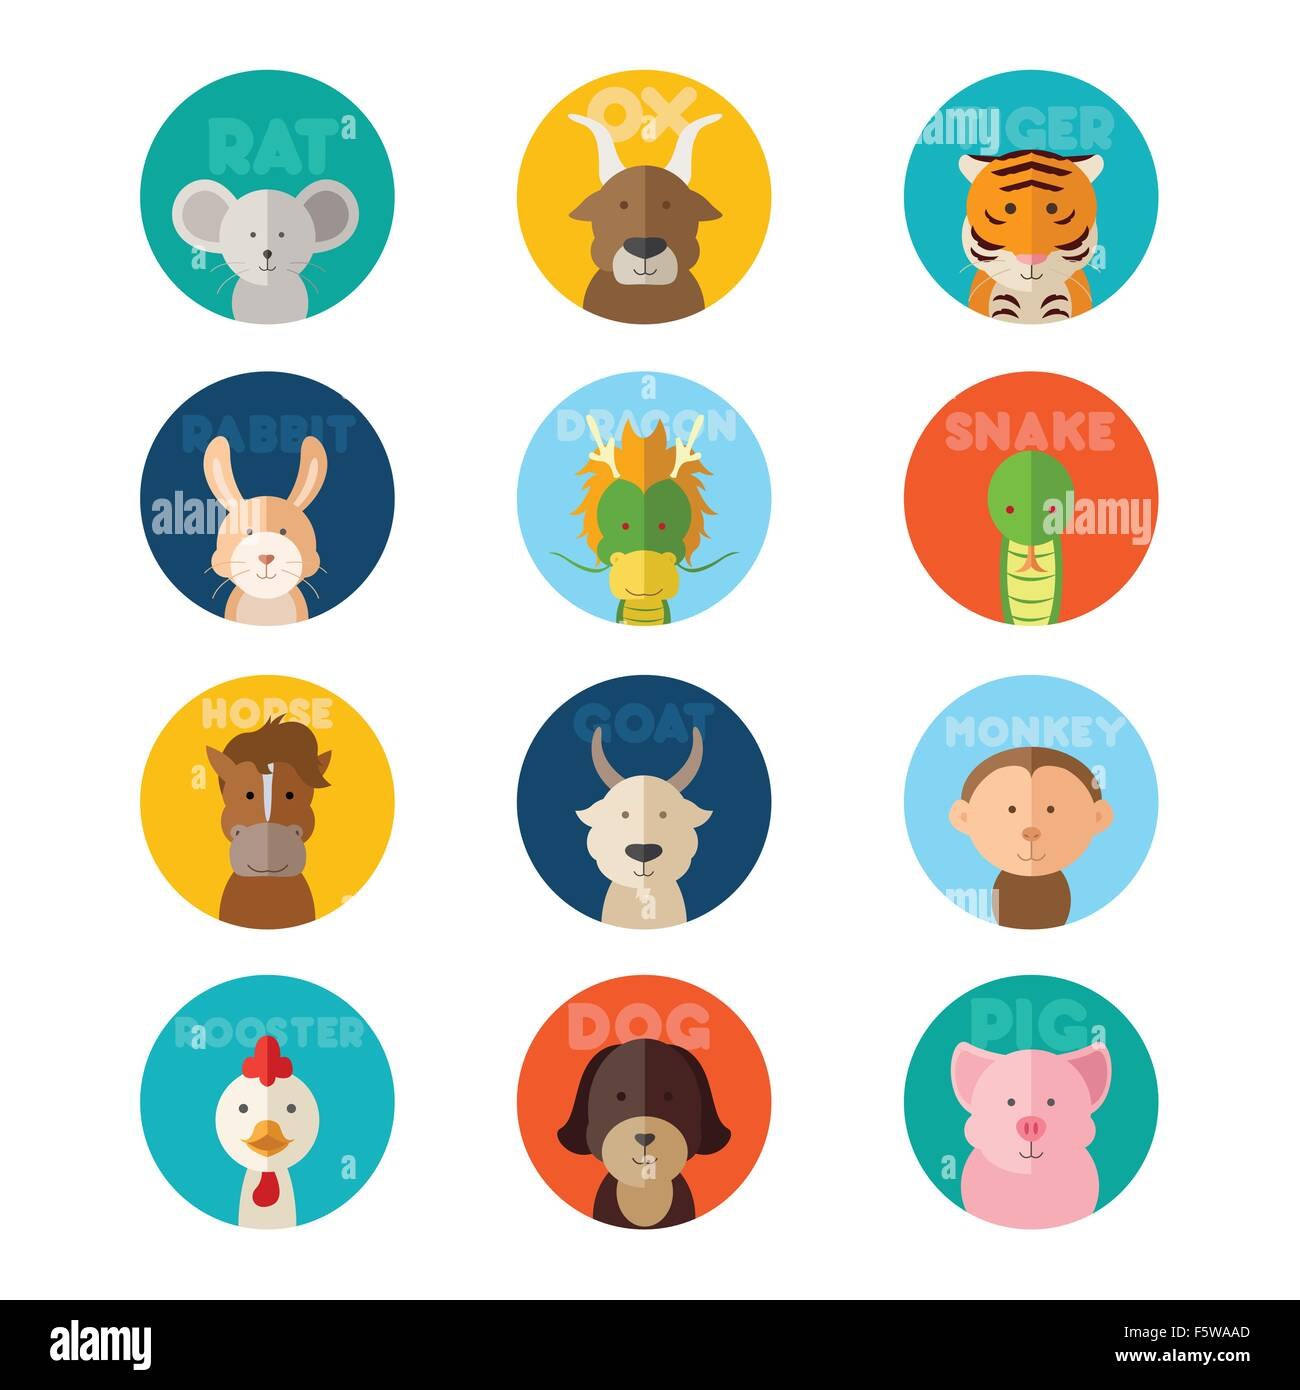 06c36cb56 A vector illustration of Chinese zodiac animal icons Stock Vector ...